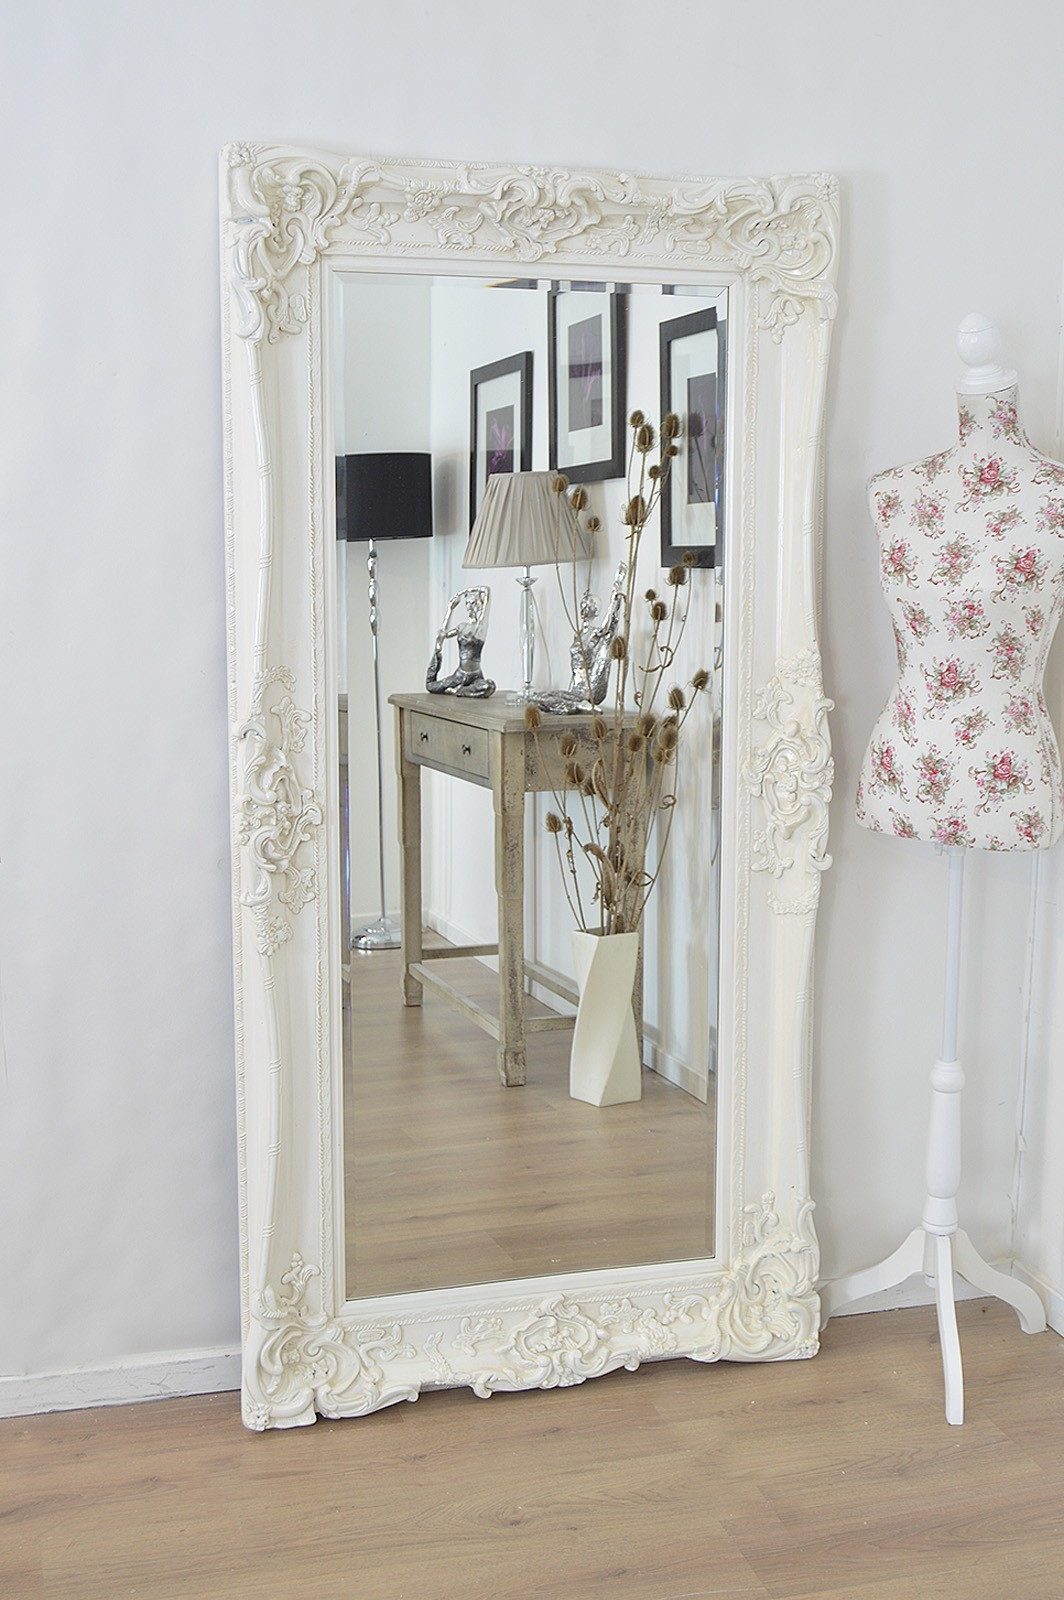 Large Ivory Antique Shab Chic Ornate Wall Mirror 6ft X 3ft Regarding Large White Shabby Chic Mirror (Image 4 of 15)